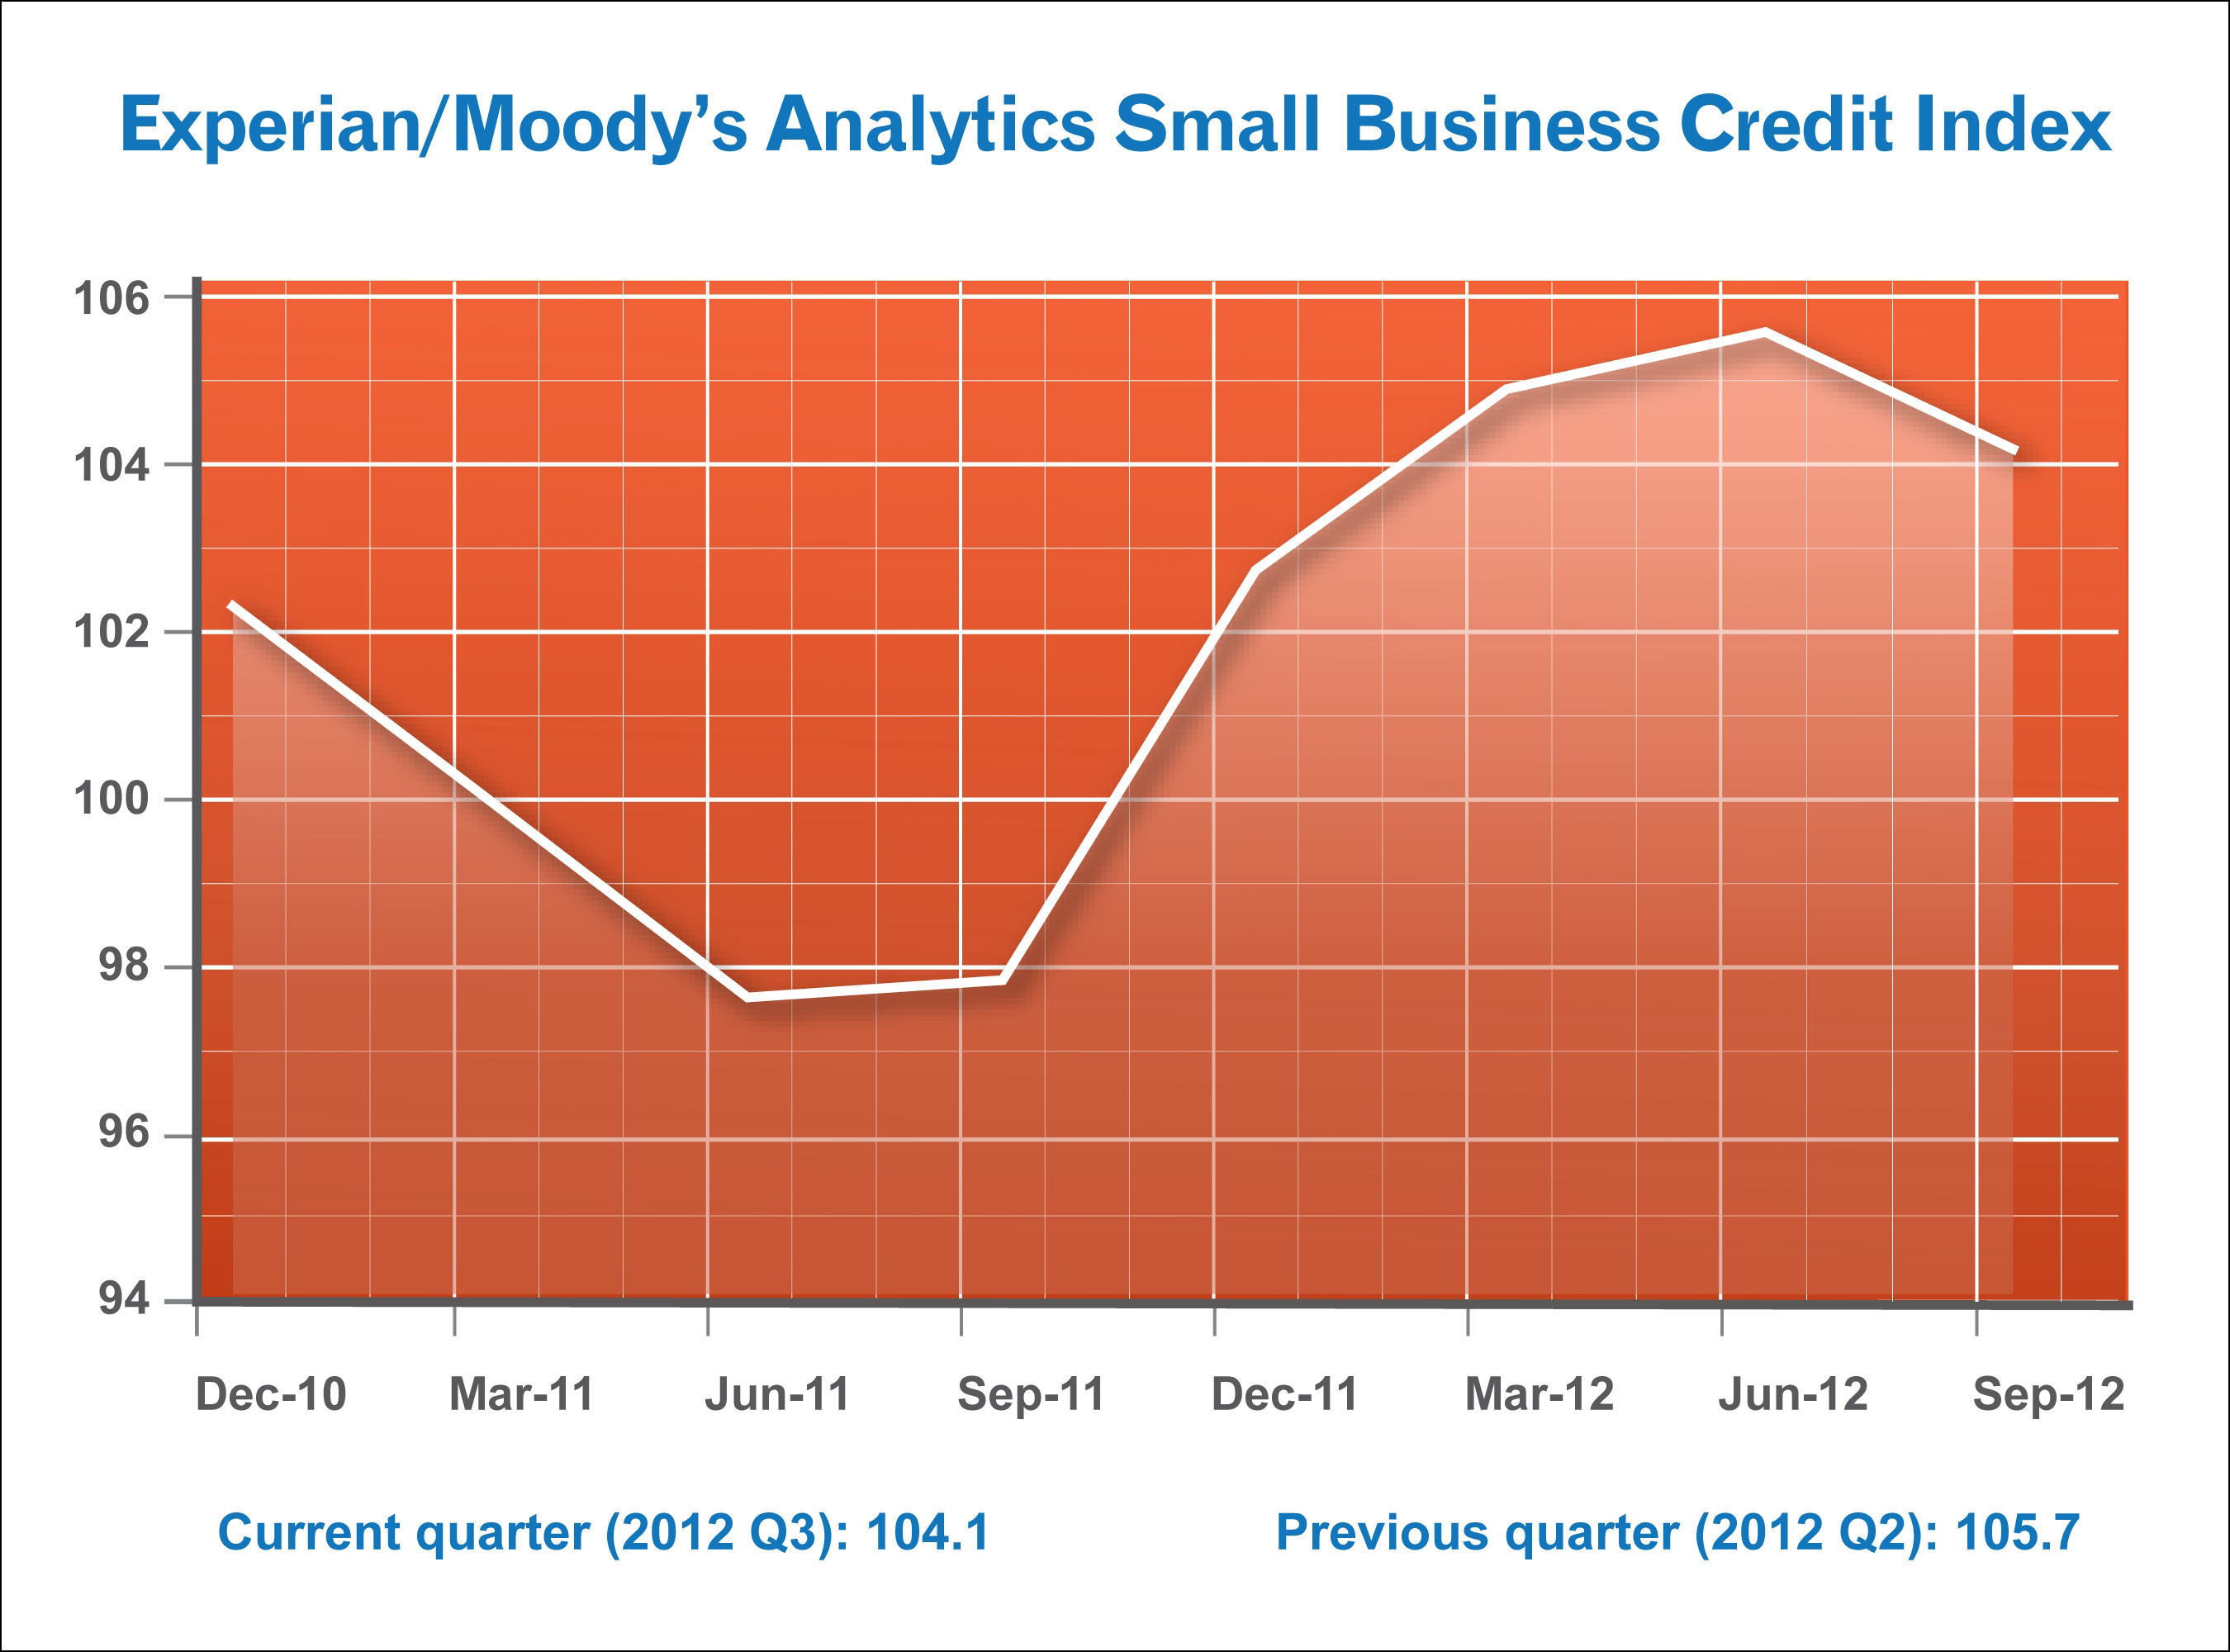 Experian/Moody's Analytics Small Business Credit Index shows small businesses faced significant challenges ...